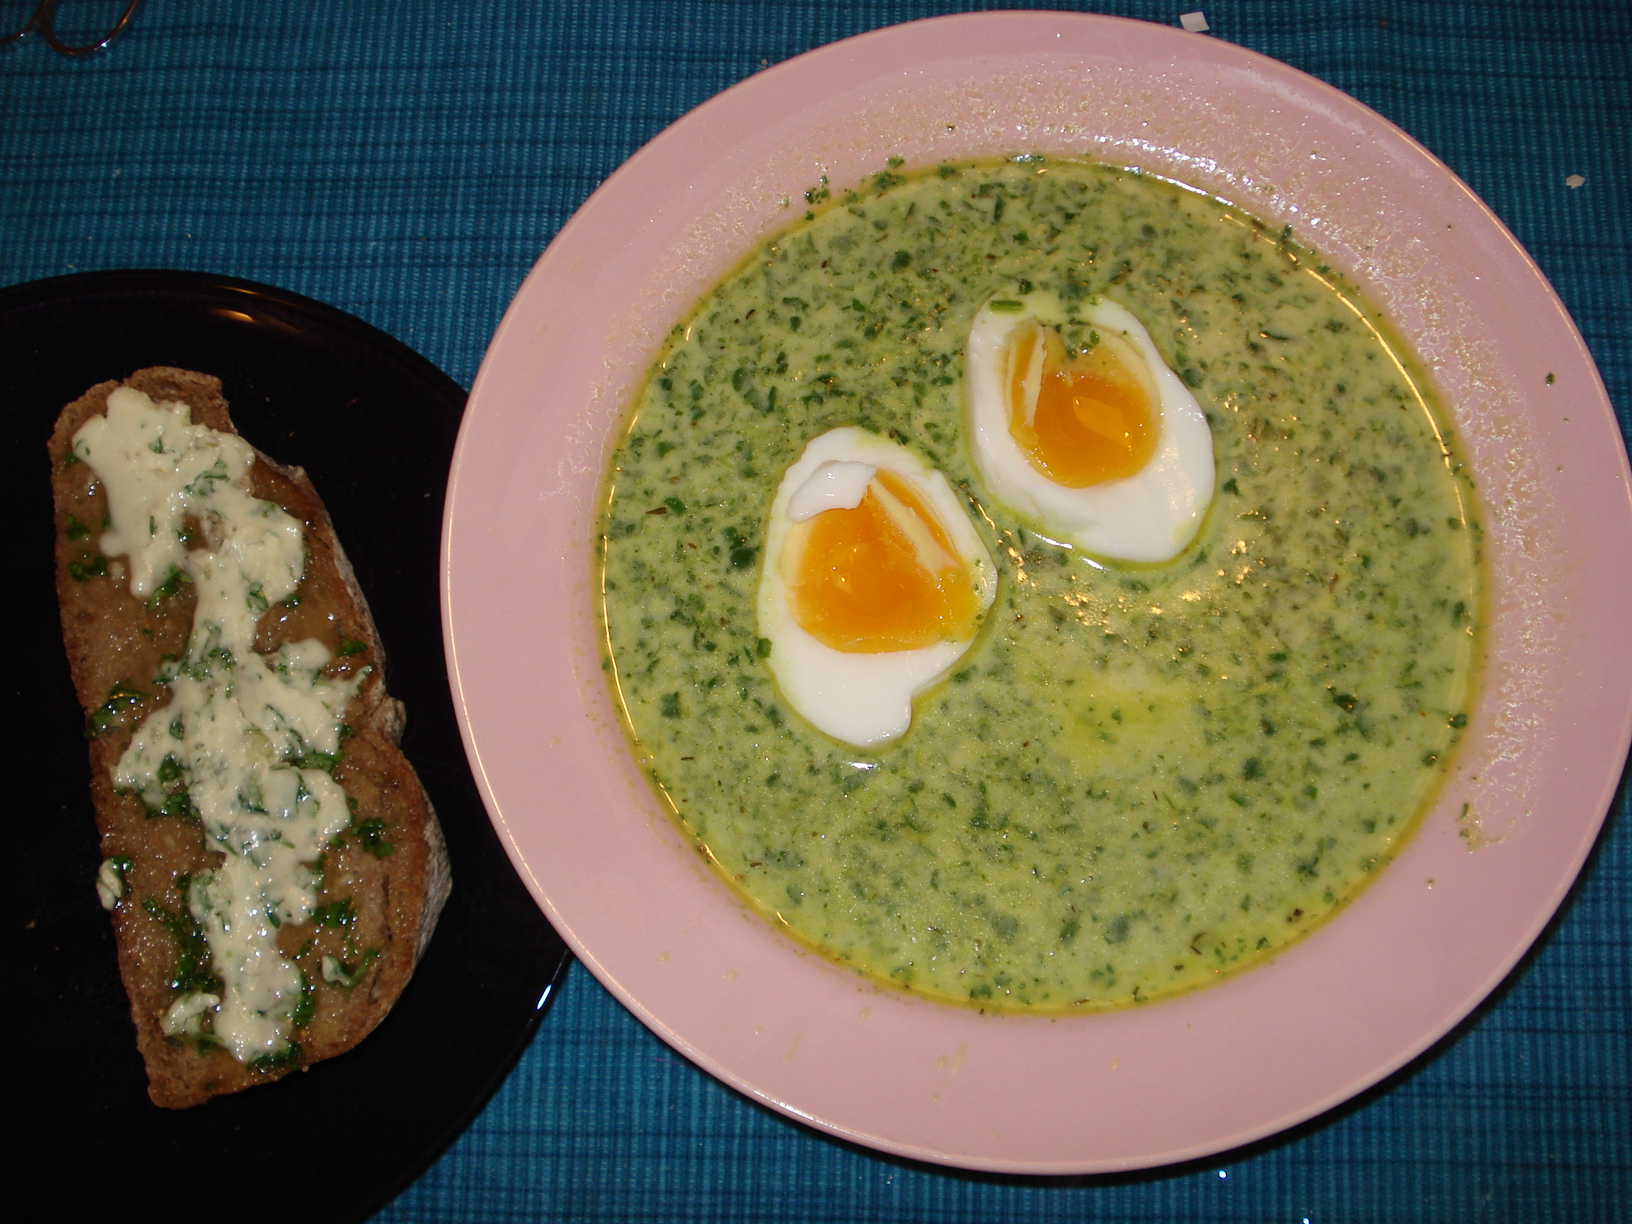 Spinach soup with eggs and garlic bread